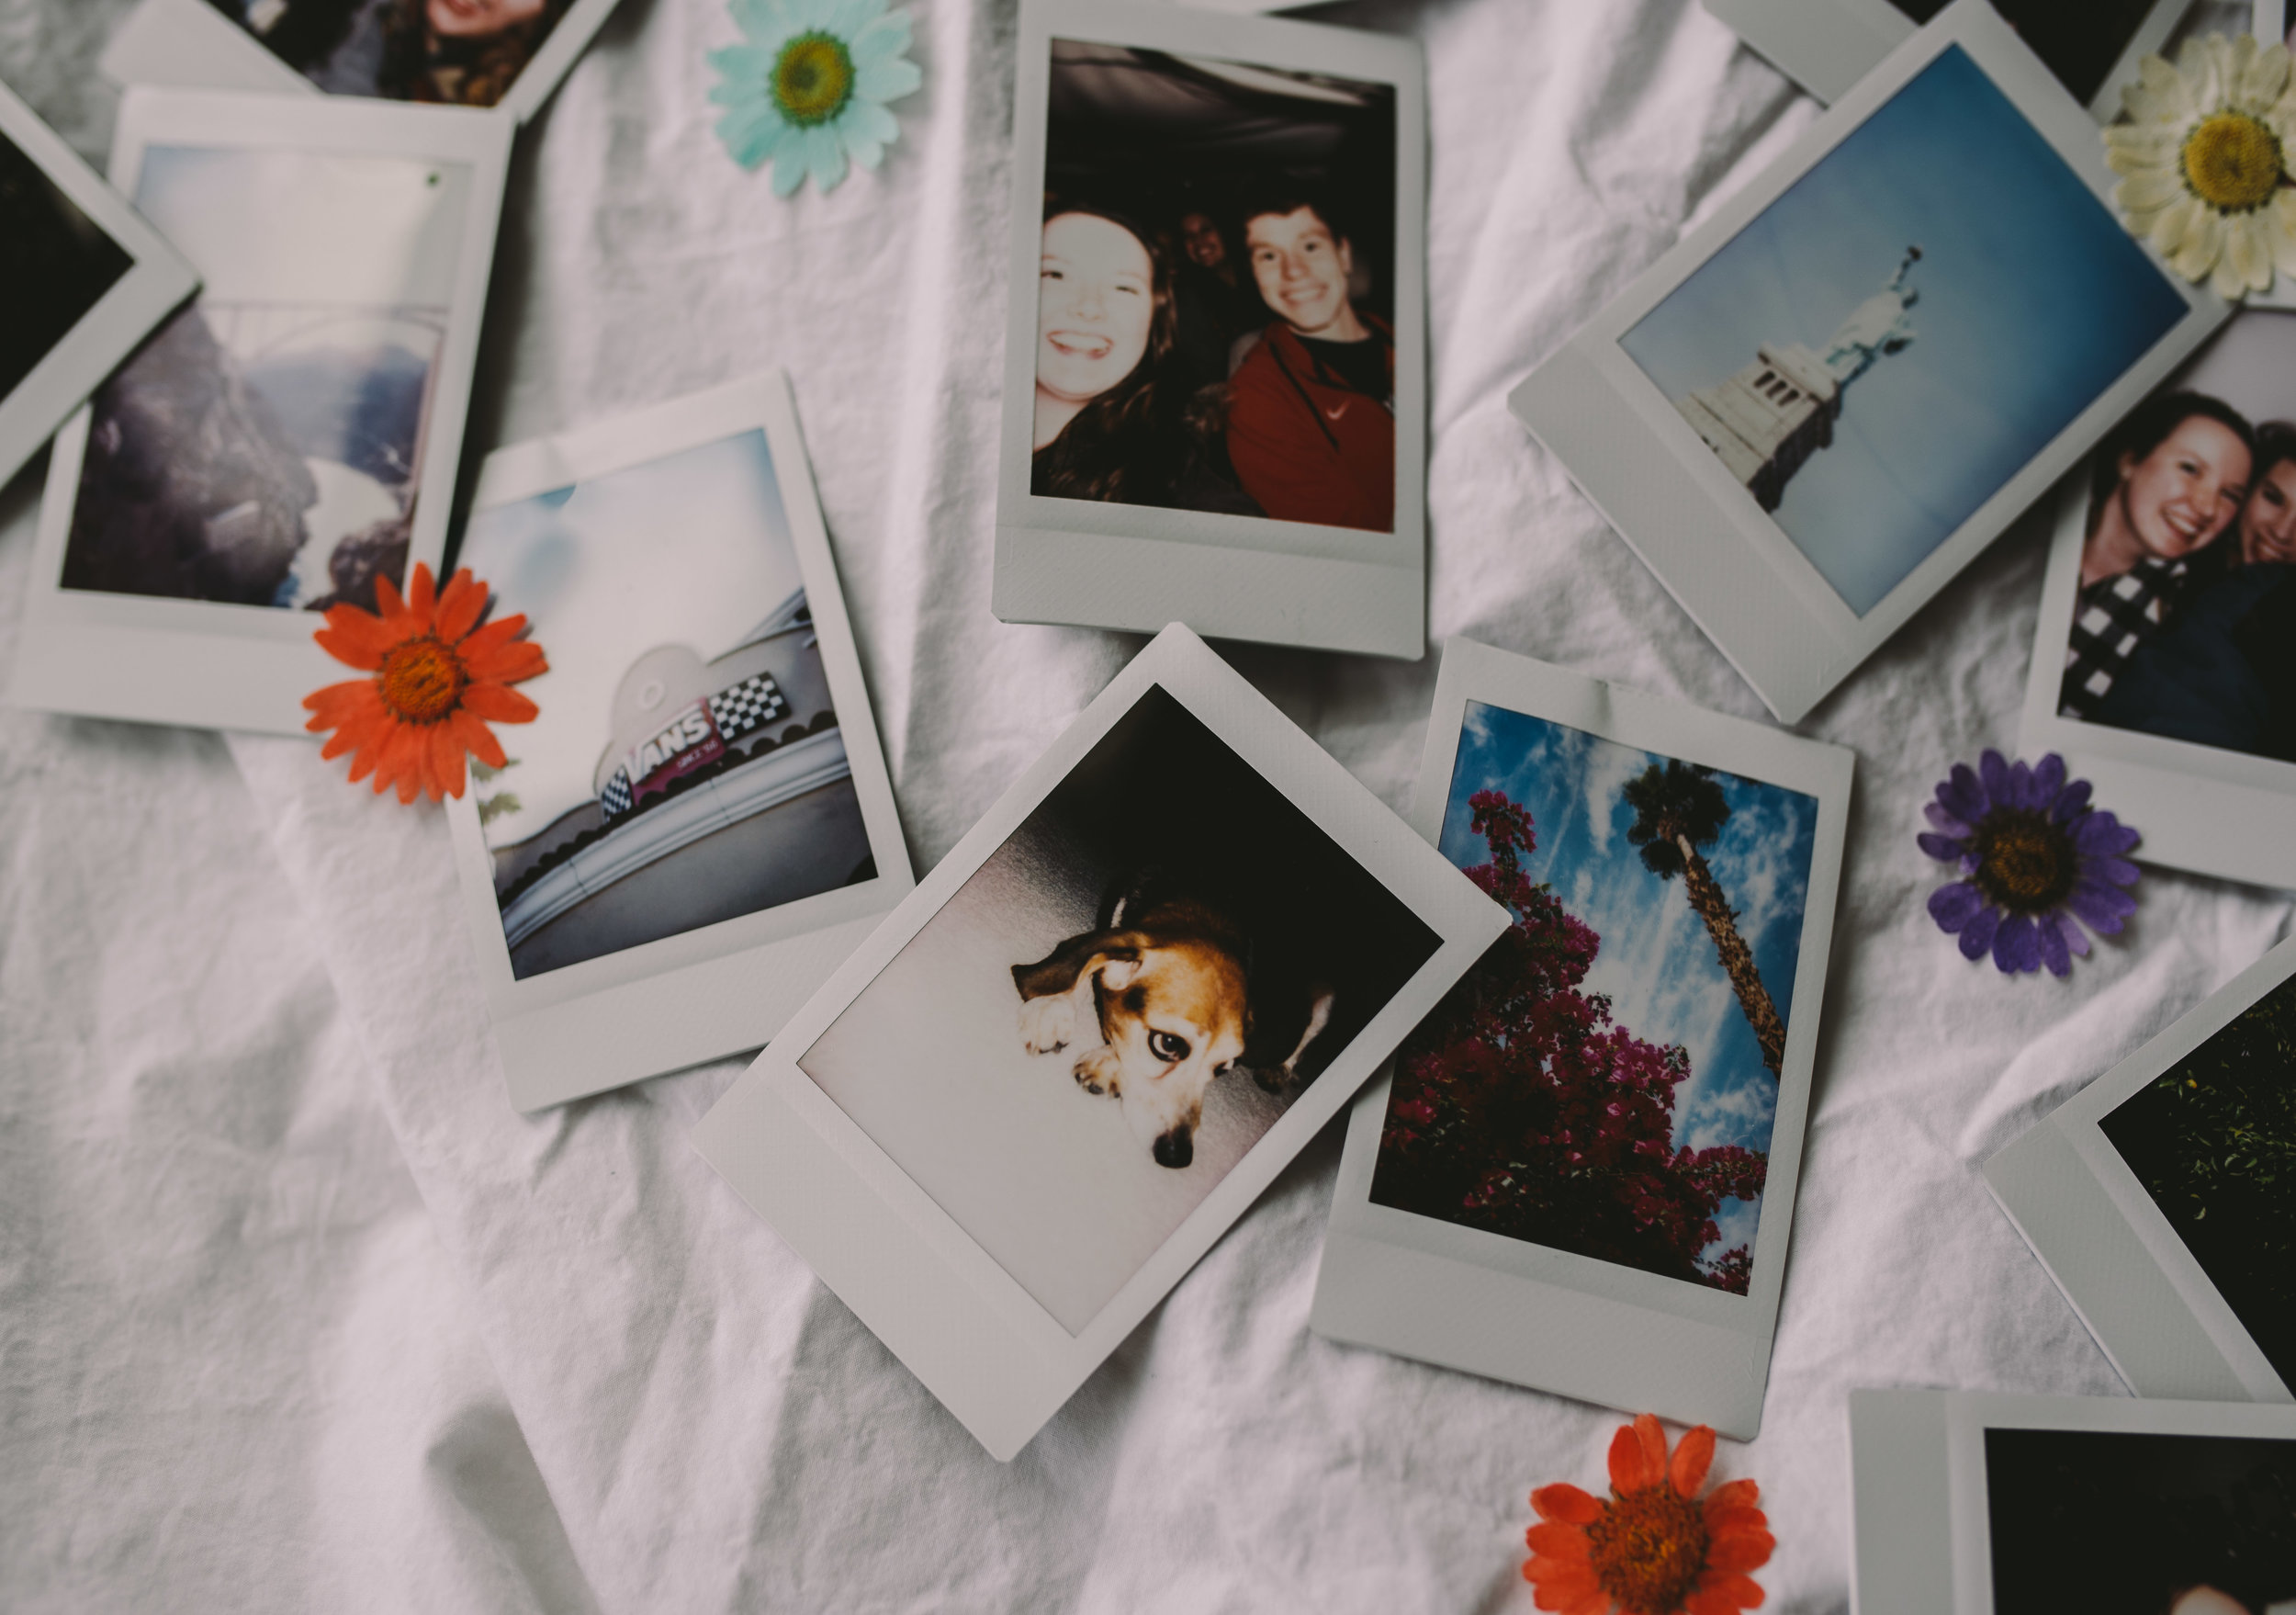 PolaroidMemories_May2018_TempeAZ_Portrait Photography In Tempe Arizona_ArizonaPortraitPhotographer_SamanthaRosePhotography_final_-6.jpg